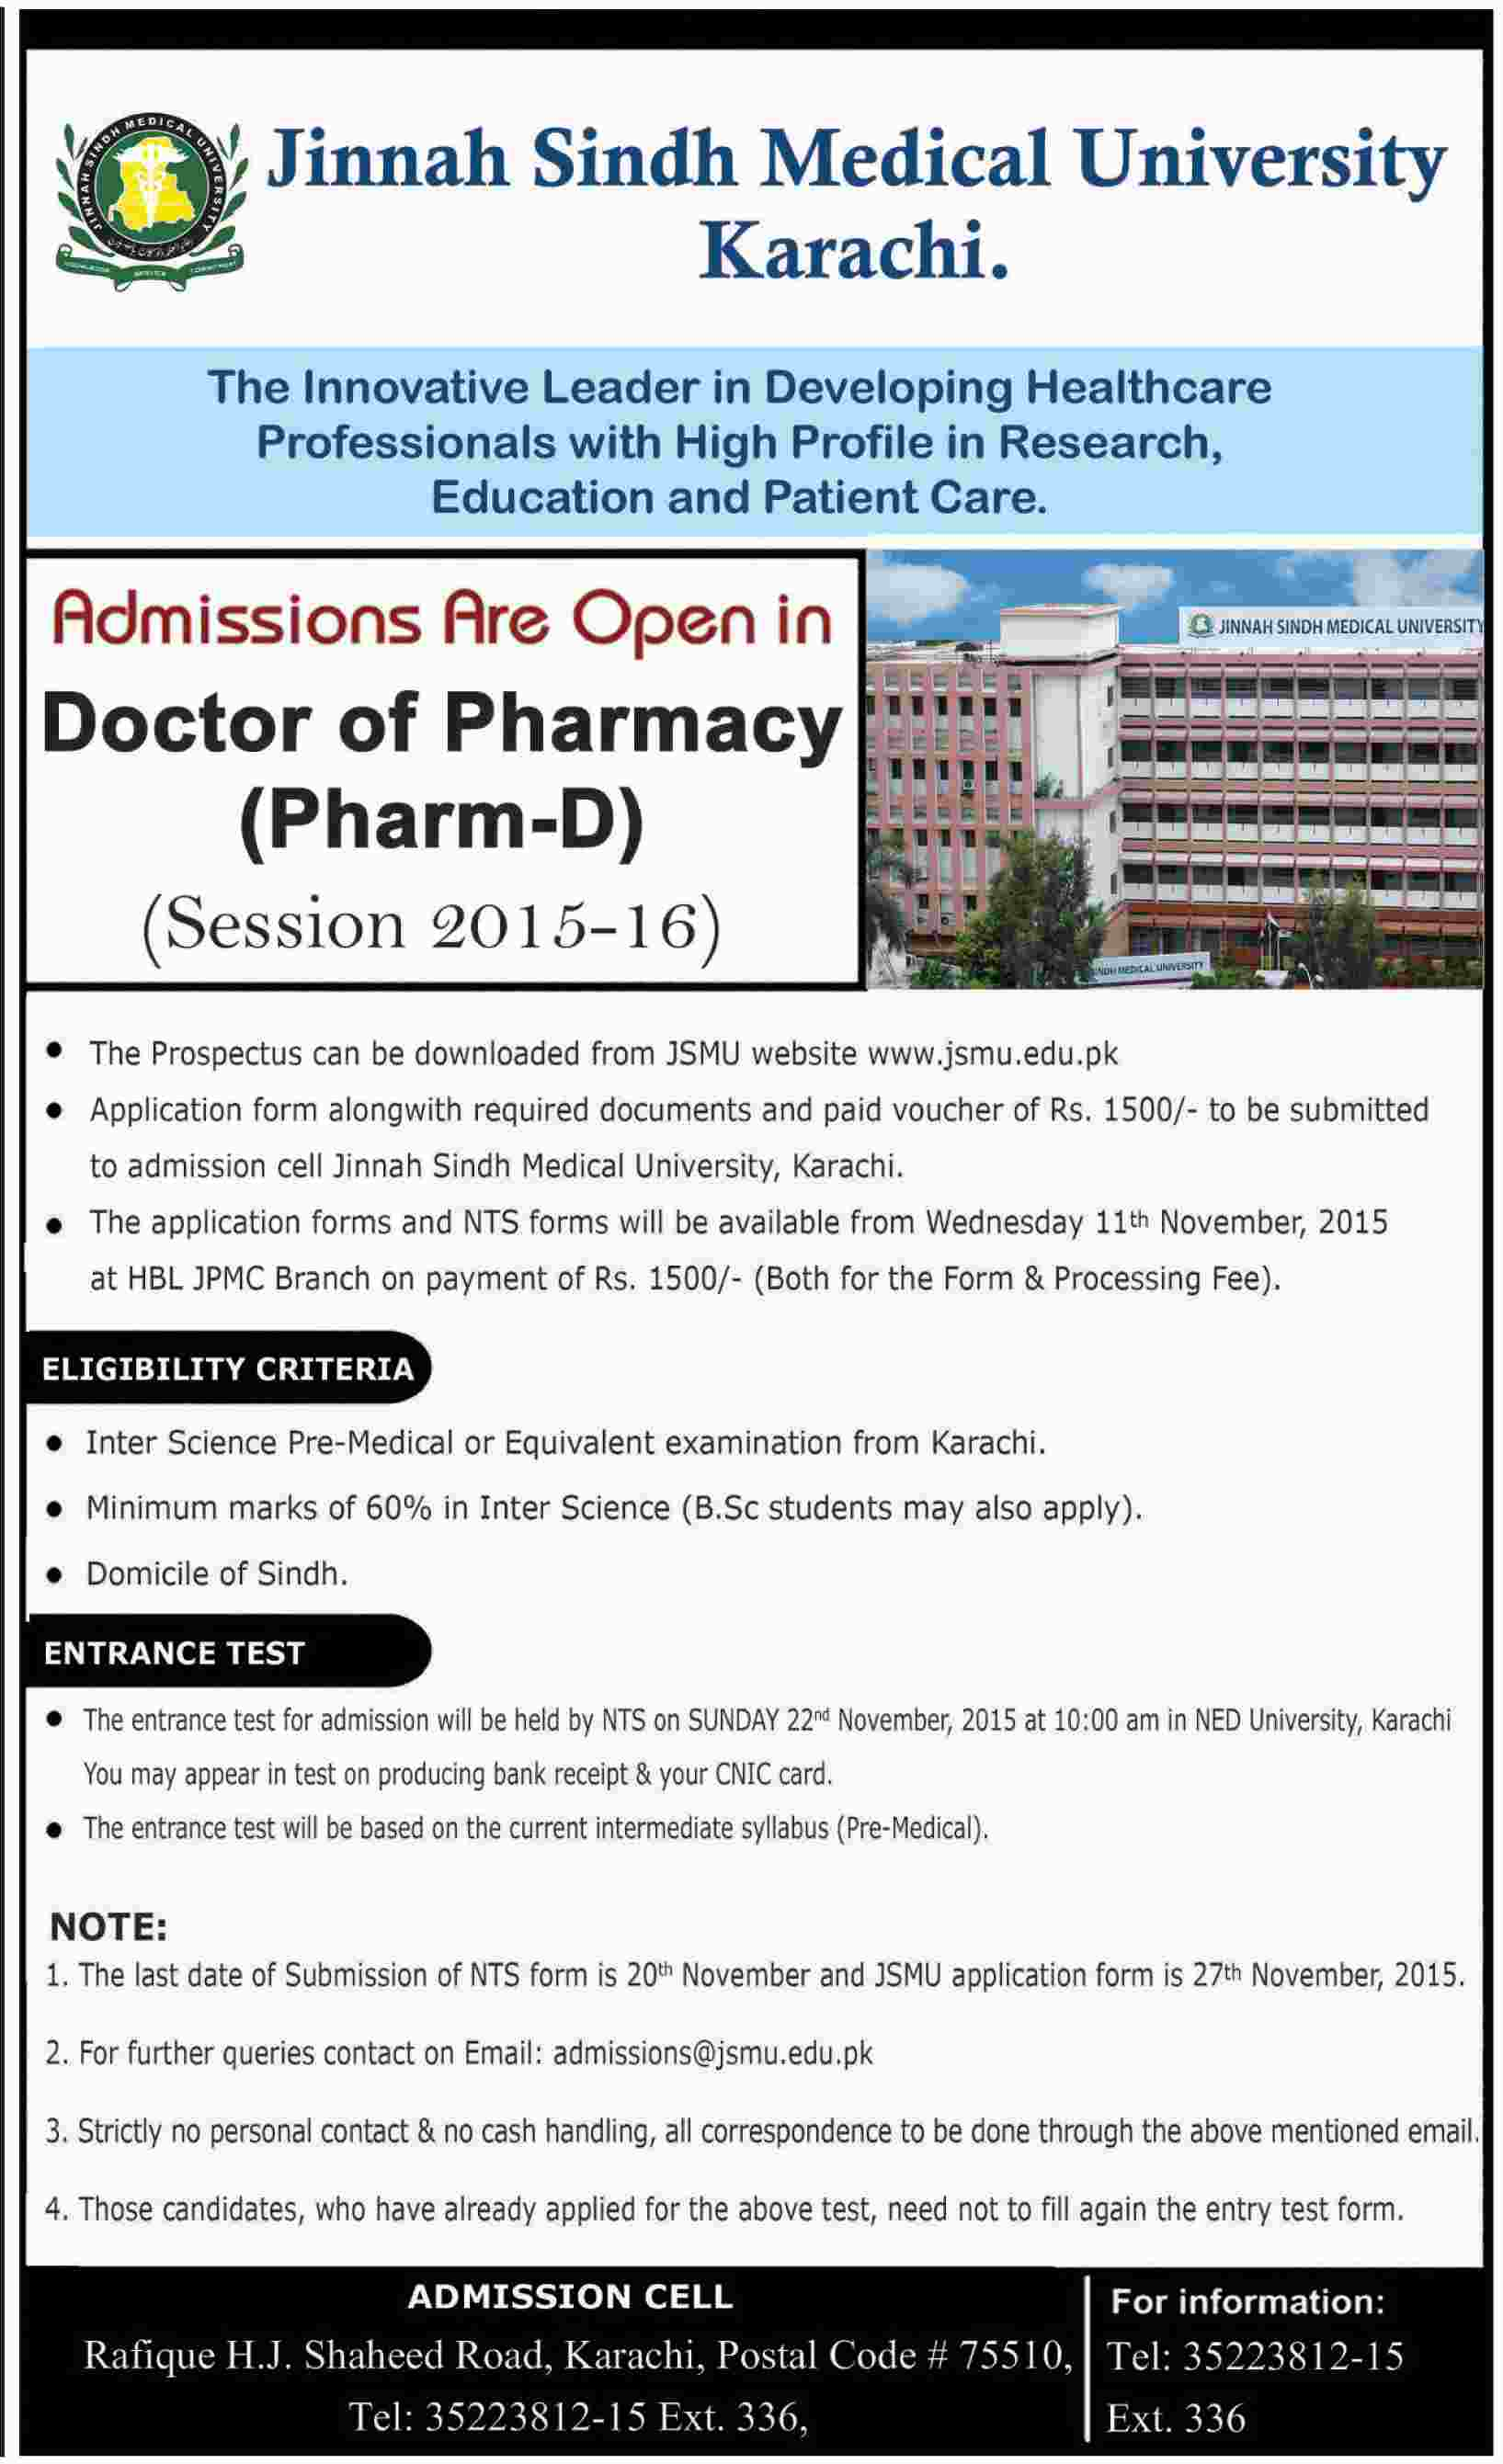 Jinnah Sindh Medical University Karachi Pharm D Admission 2015-16